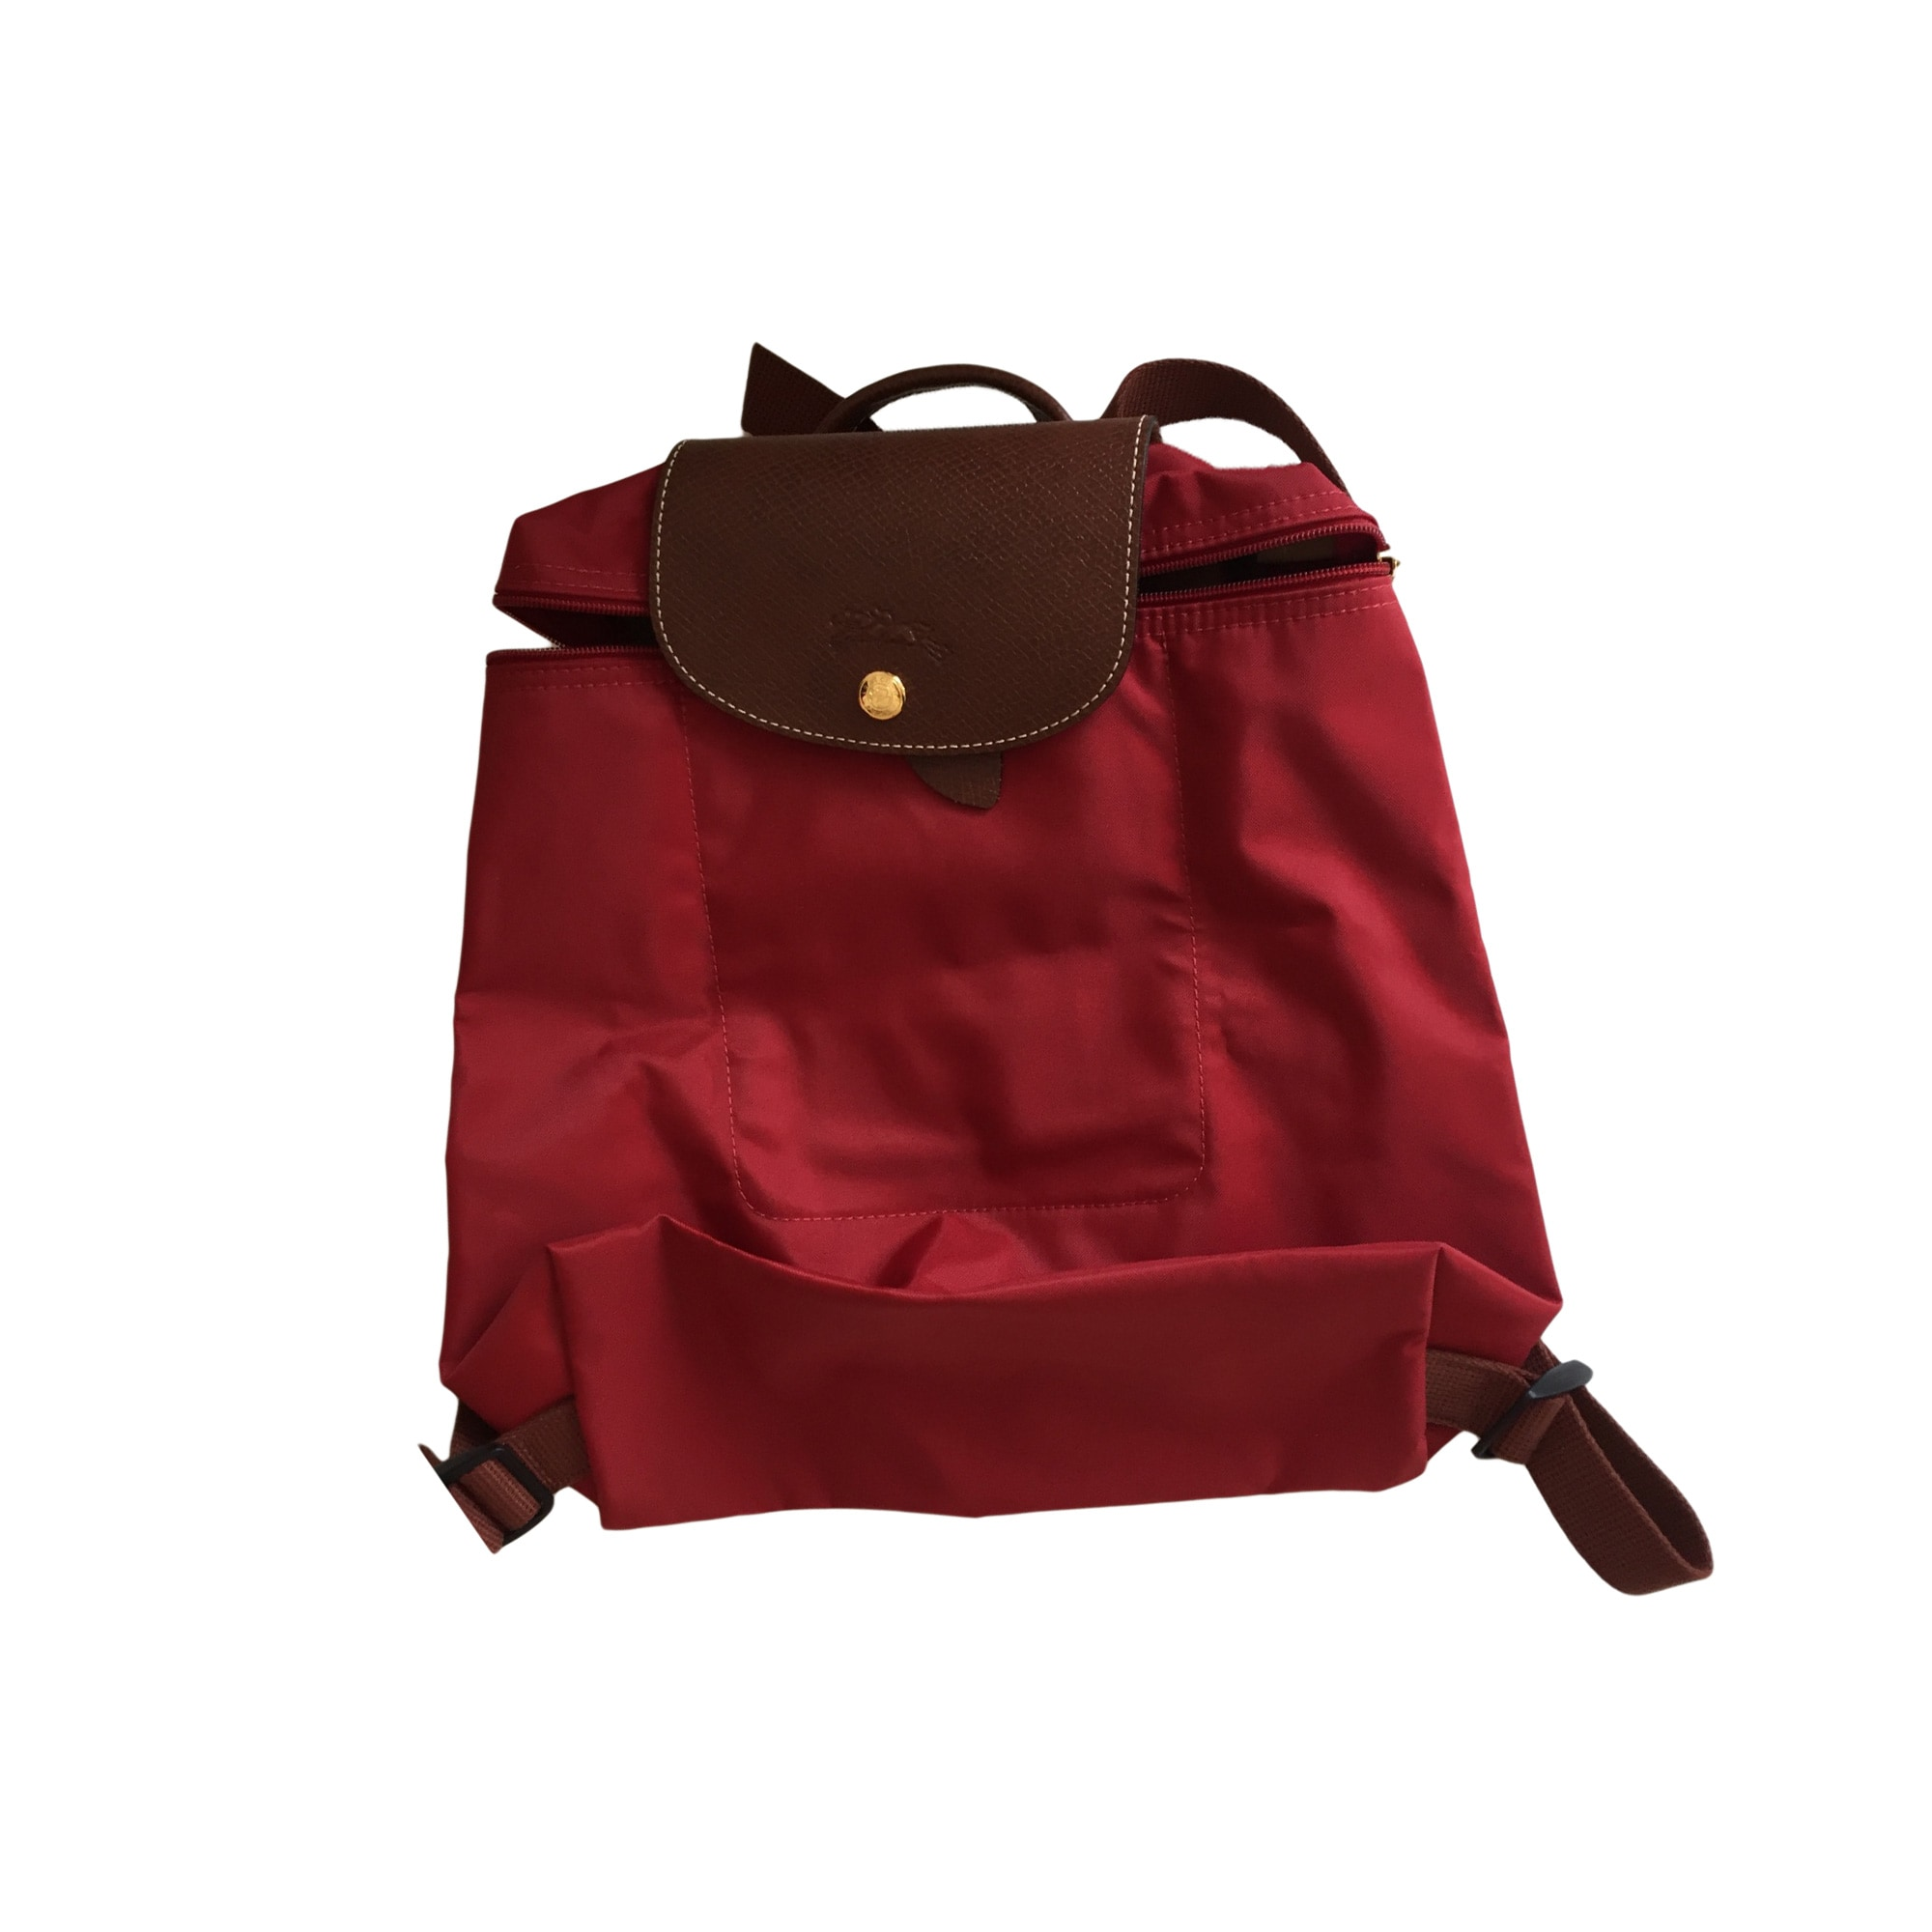 Backpack LONGCHAMP Red, burgundy